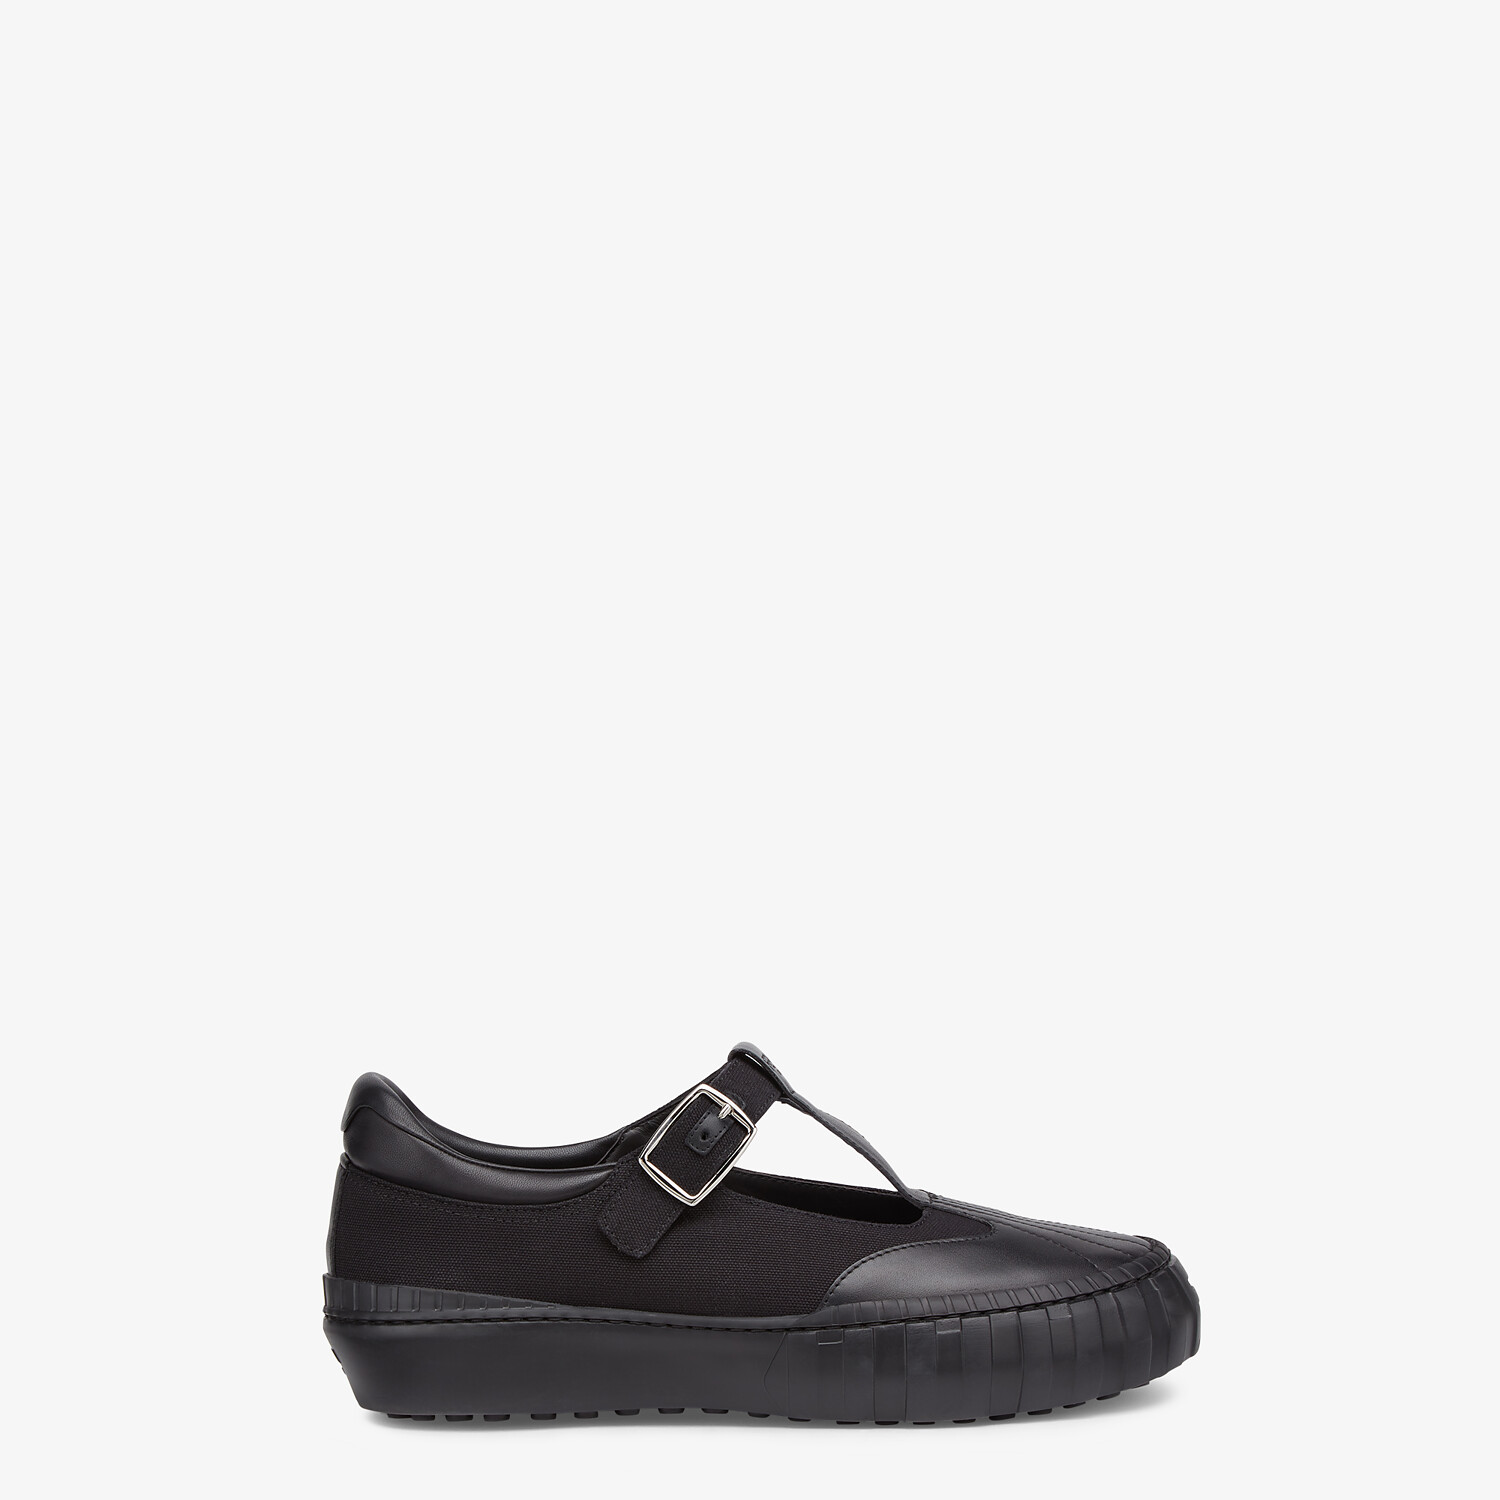 FENDI SNEAKERS - Black canvas low tops - view 1 detail